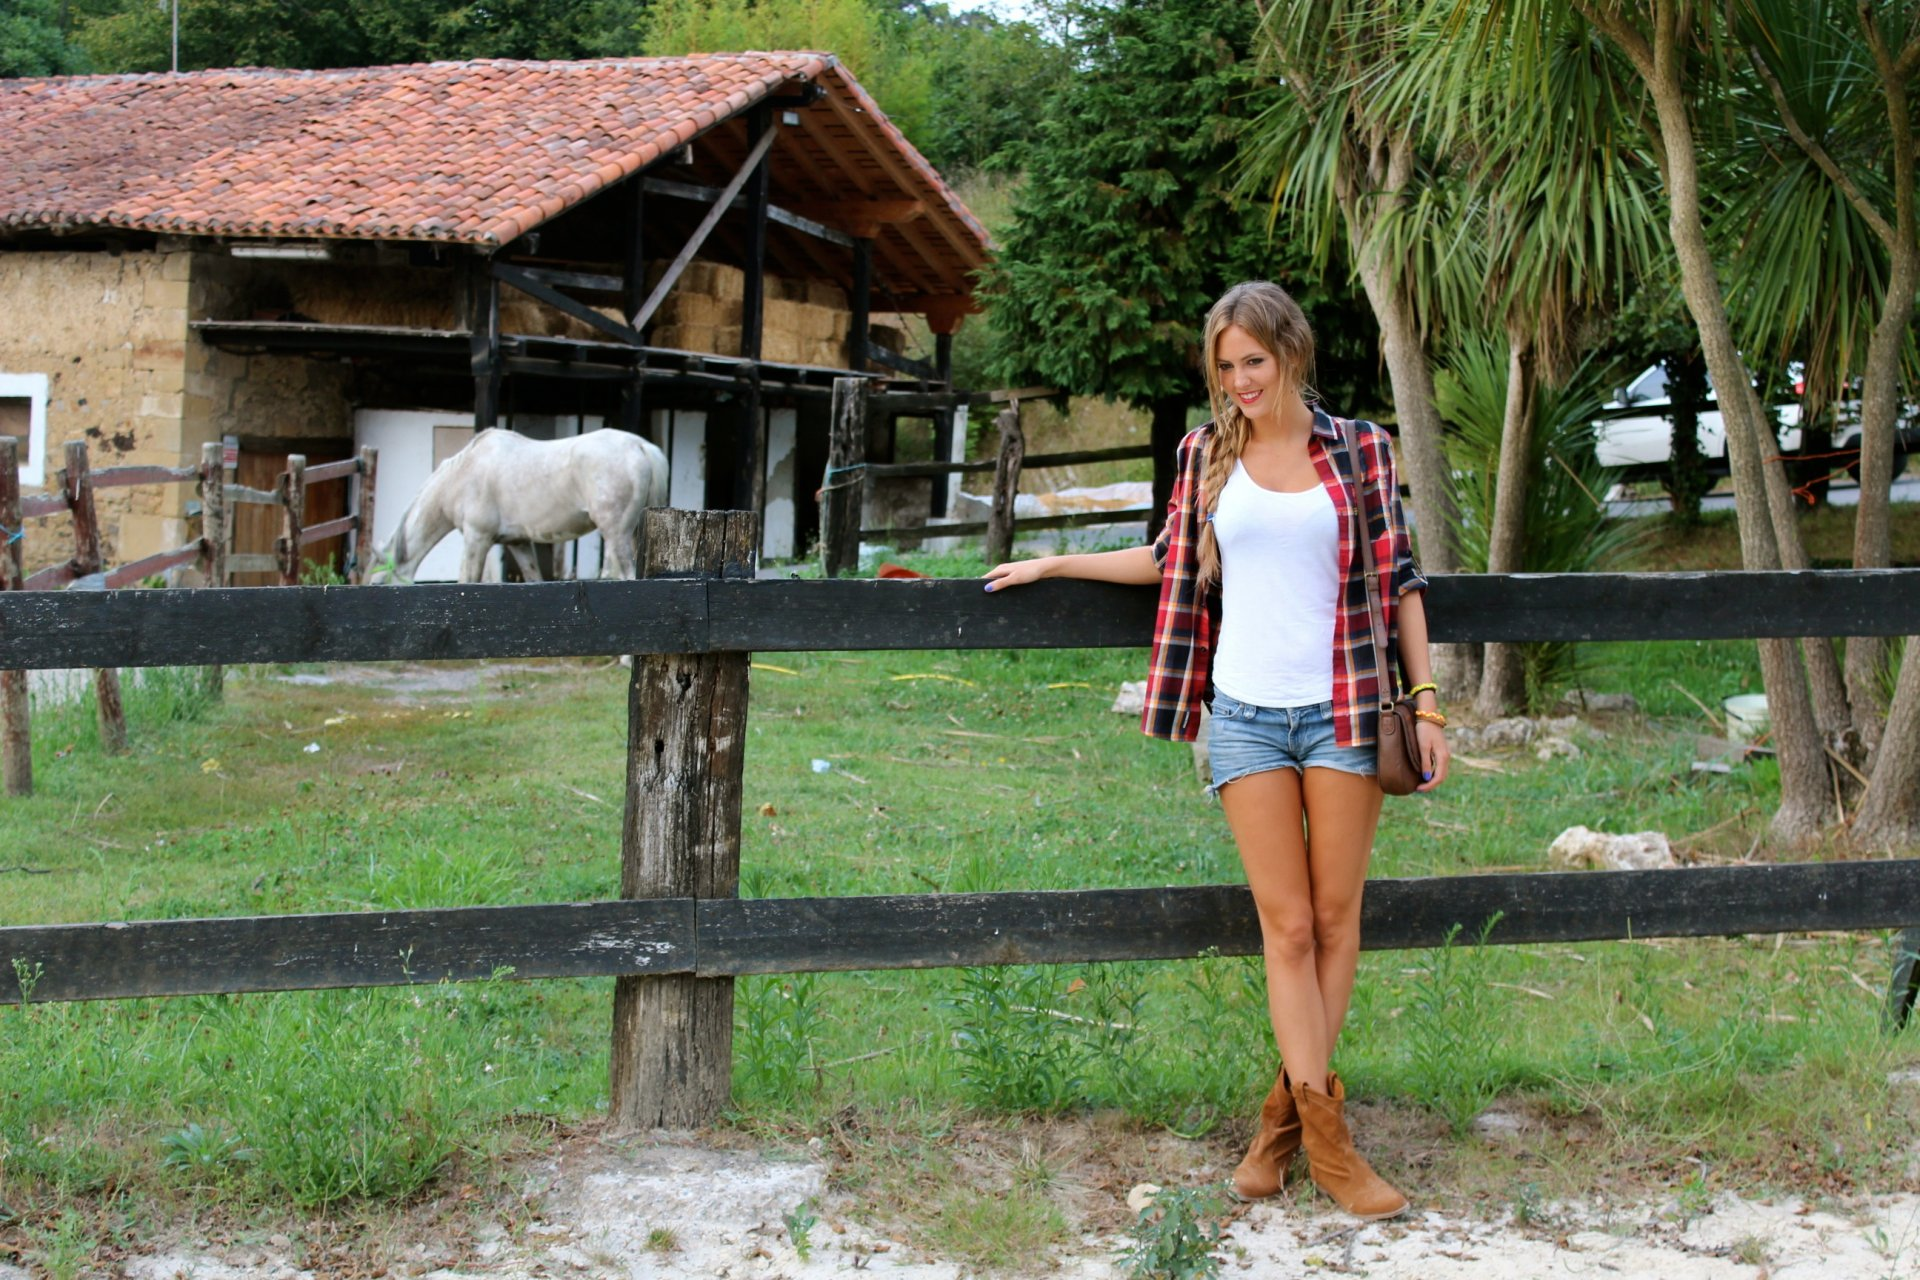 Young girls on the farm free video — photo 2